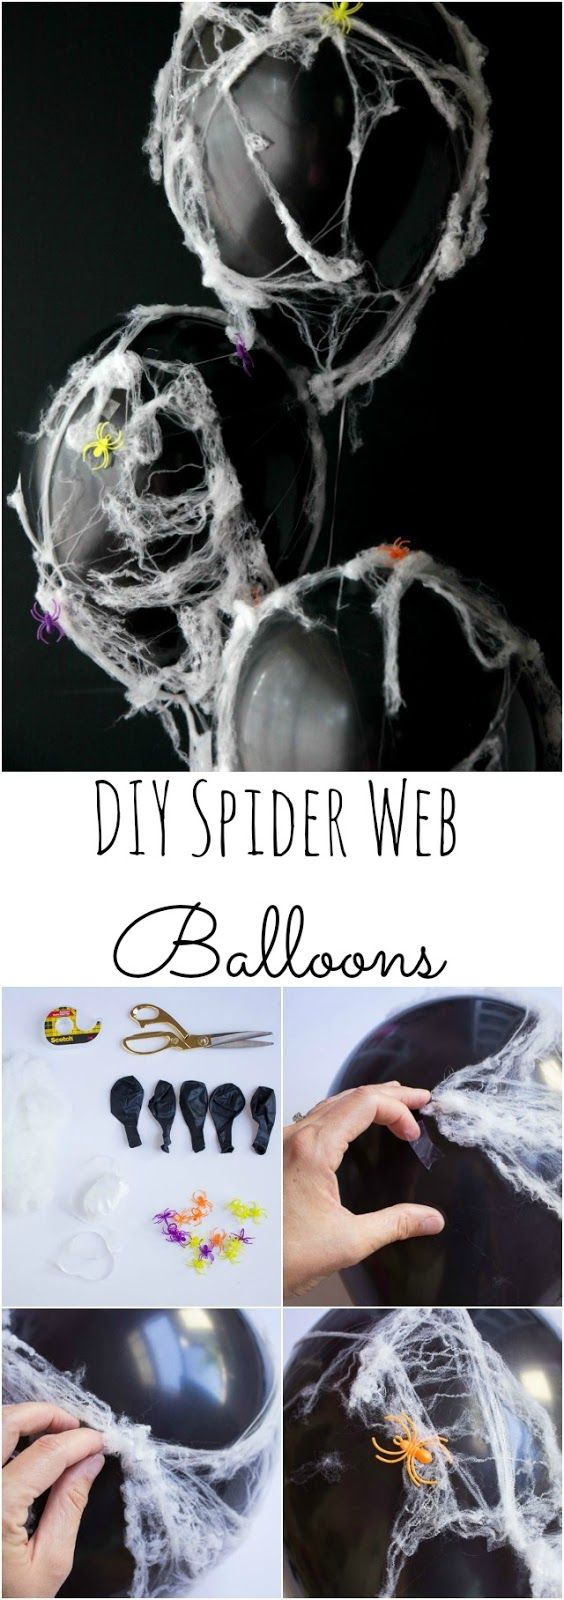 Halloween Spider Web Balloons - lightweight faux spider web and bright spiders transform plain black balloons into eerie and modern Halloween decor!